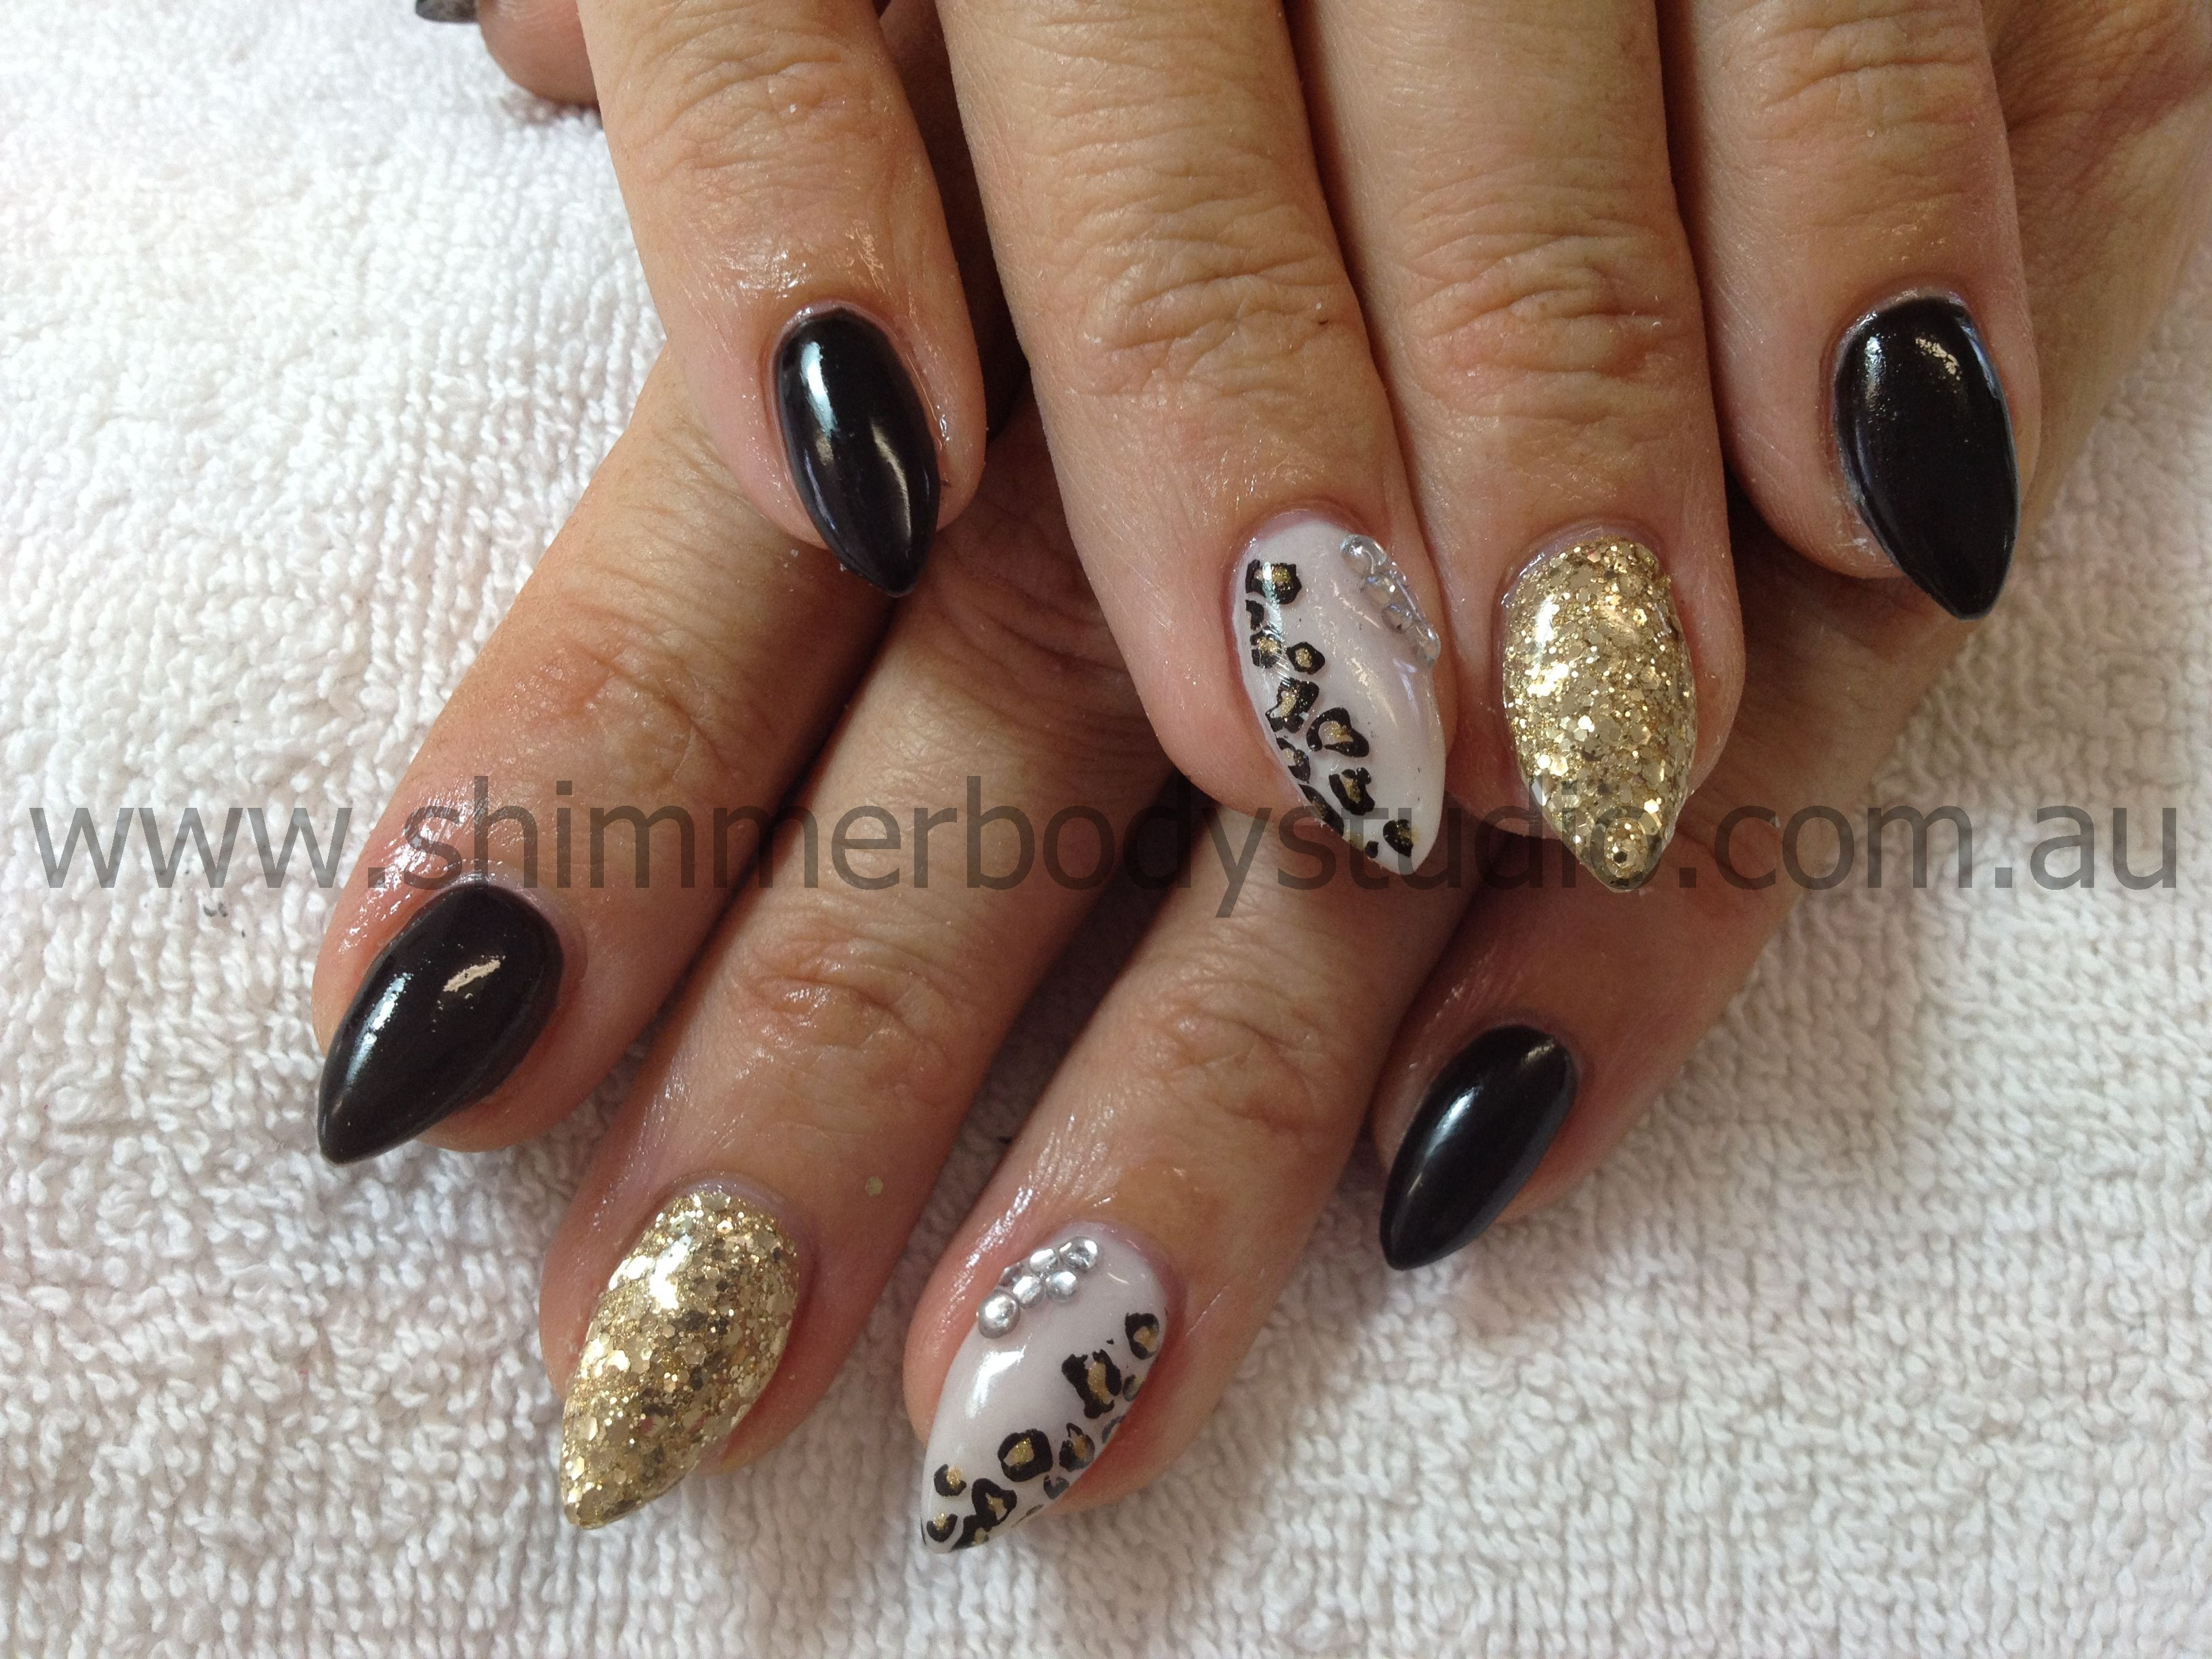 Gel nails, stiletto nails, black, gold, white nails, leopard print ...